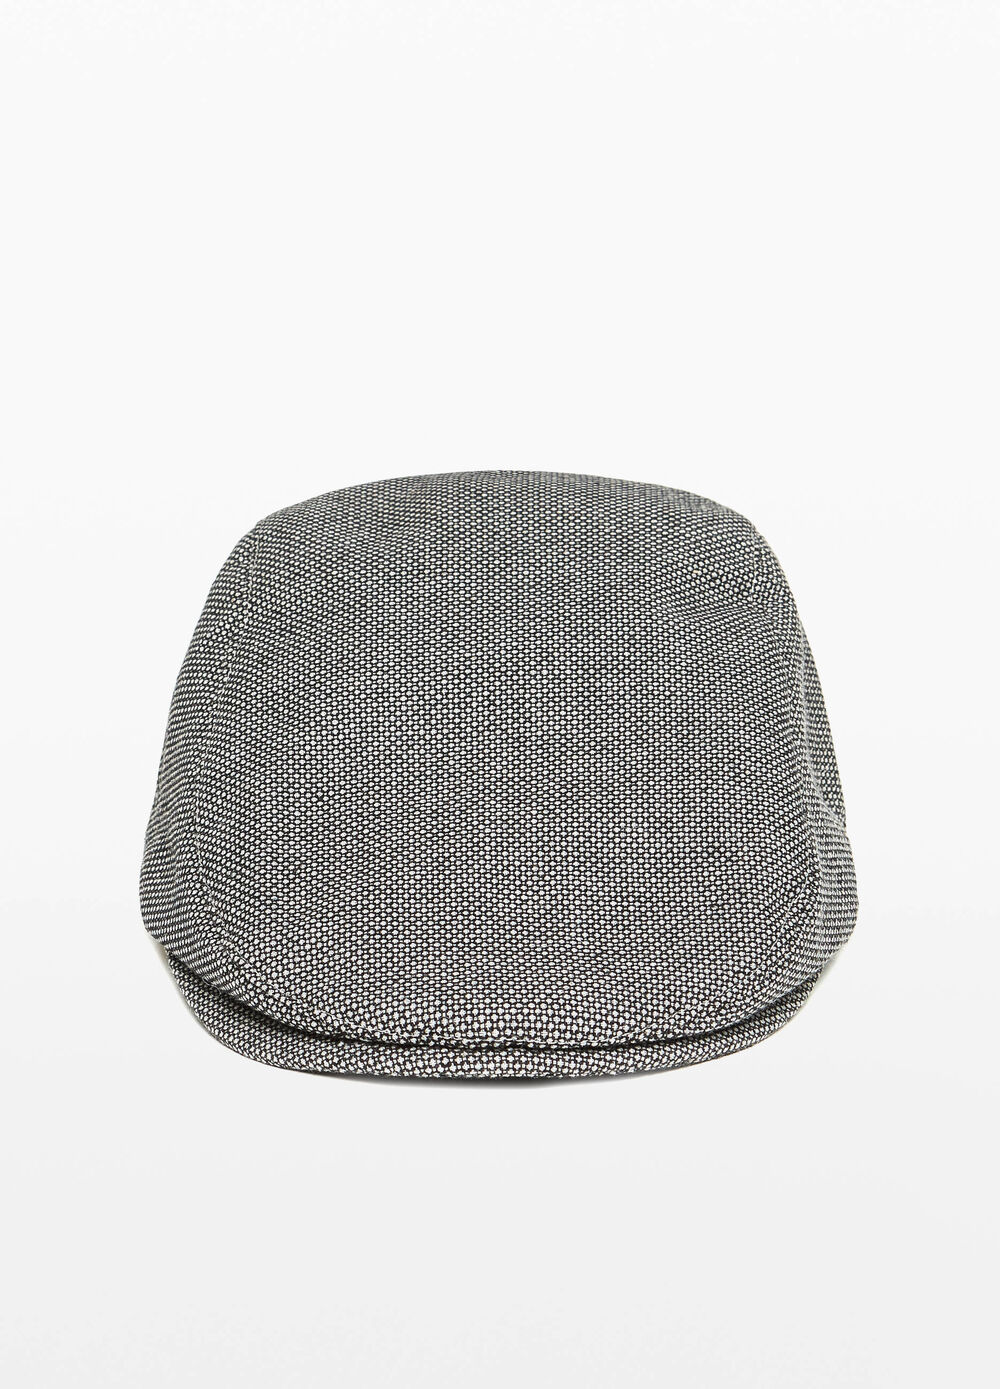 Cotton flat cap with micro pattern